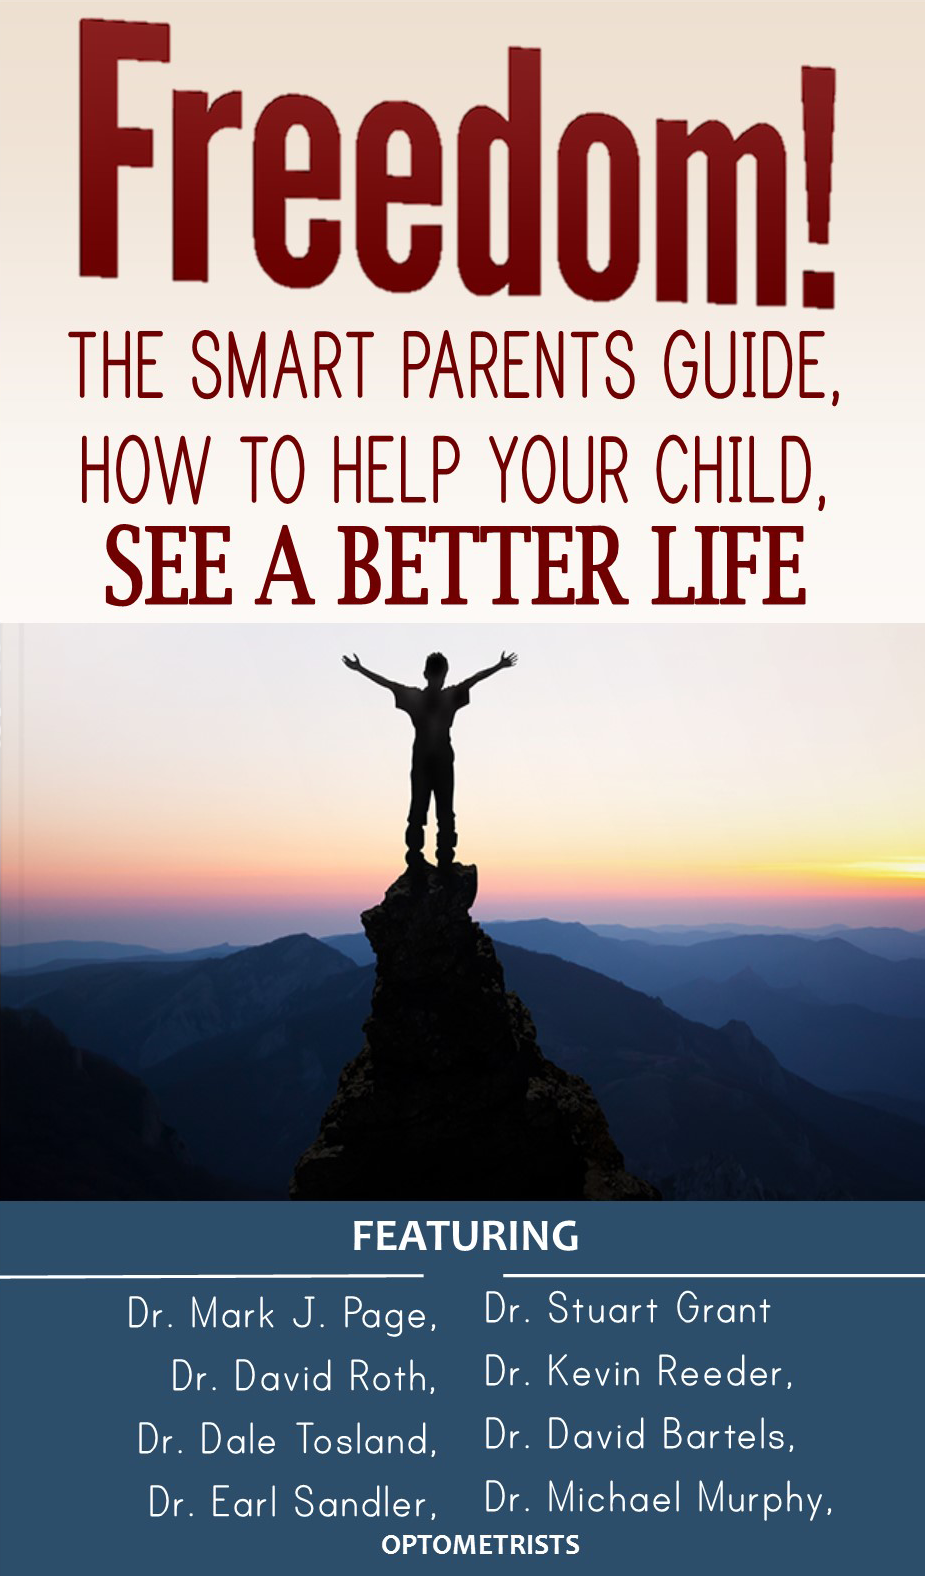 Freedom the smart parents guide,  how to help your child see a better life By Dr. Mark J. Page